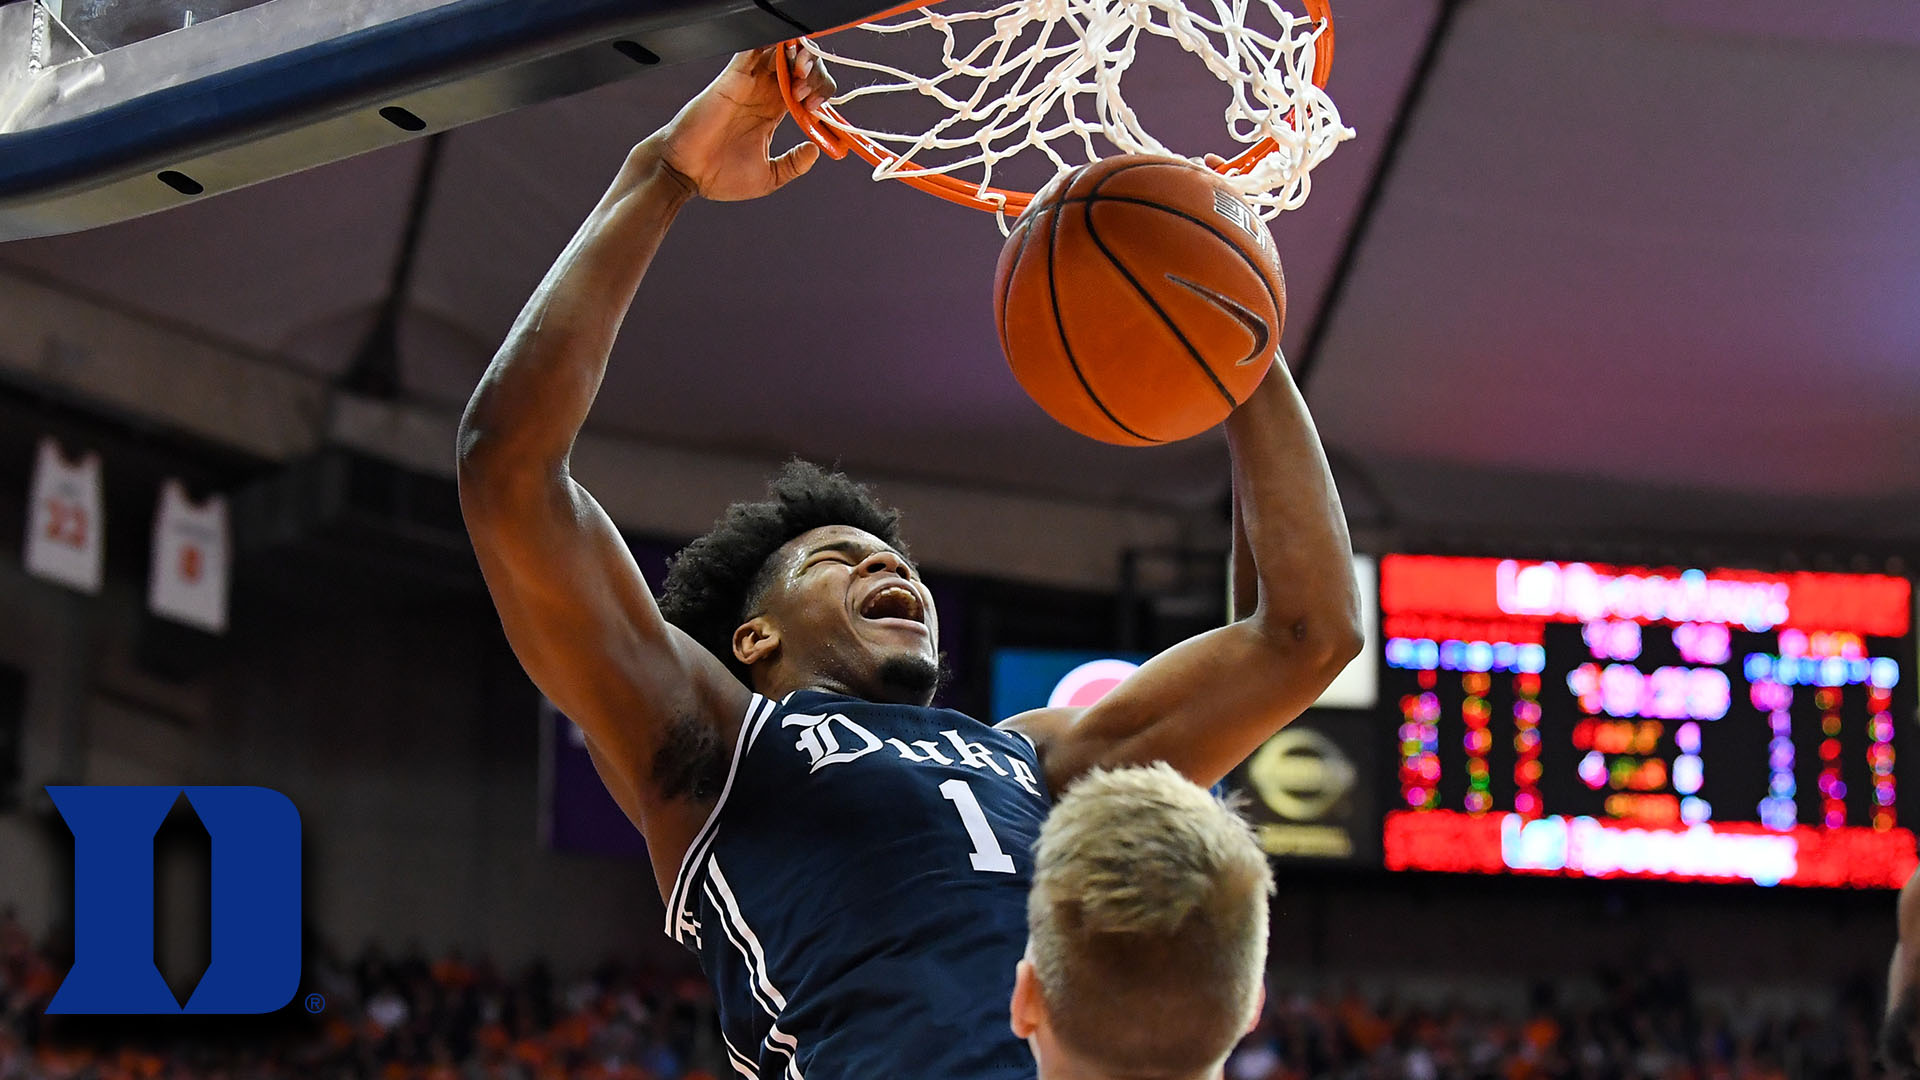 Devils Down the Orange 97-88; Vernon Carey Jr. Scores 26 points, 17 rebounds; Tre Jones goes 10-10 from the Free Throw Line